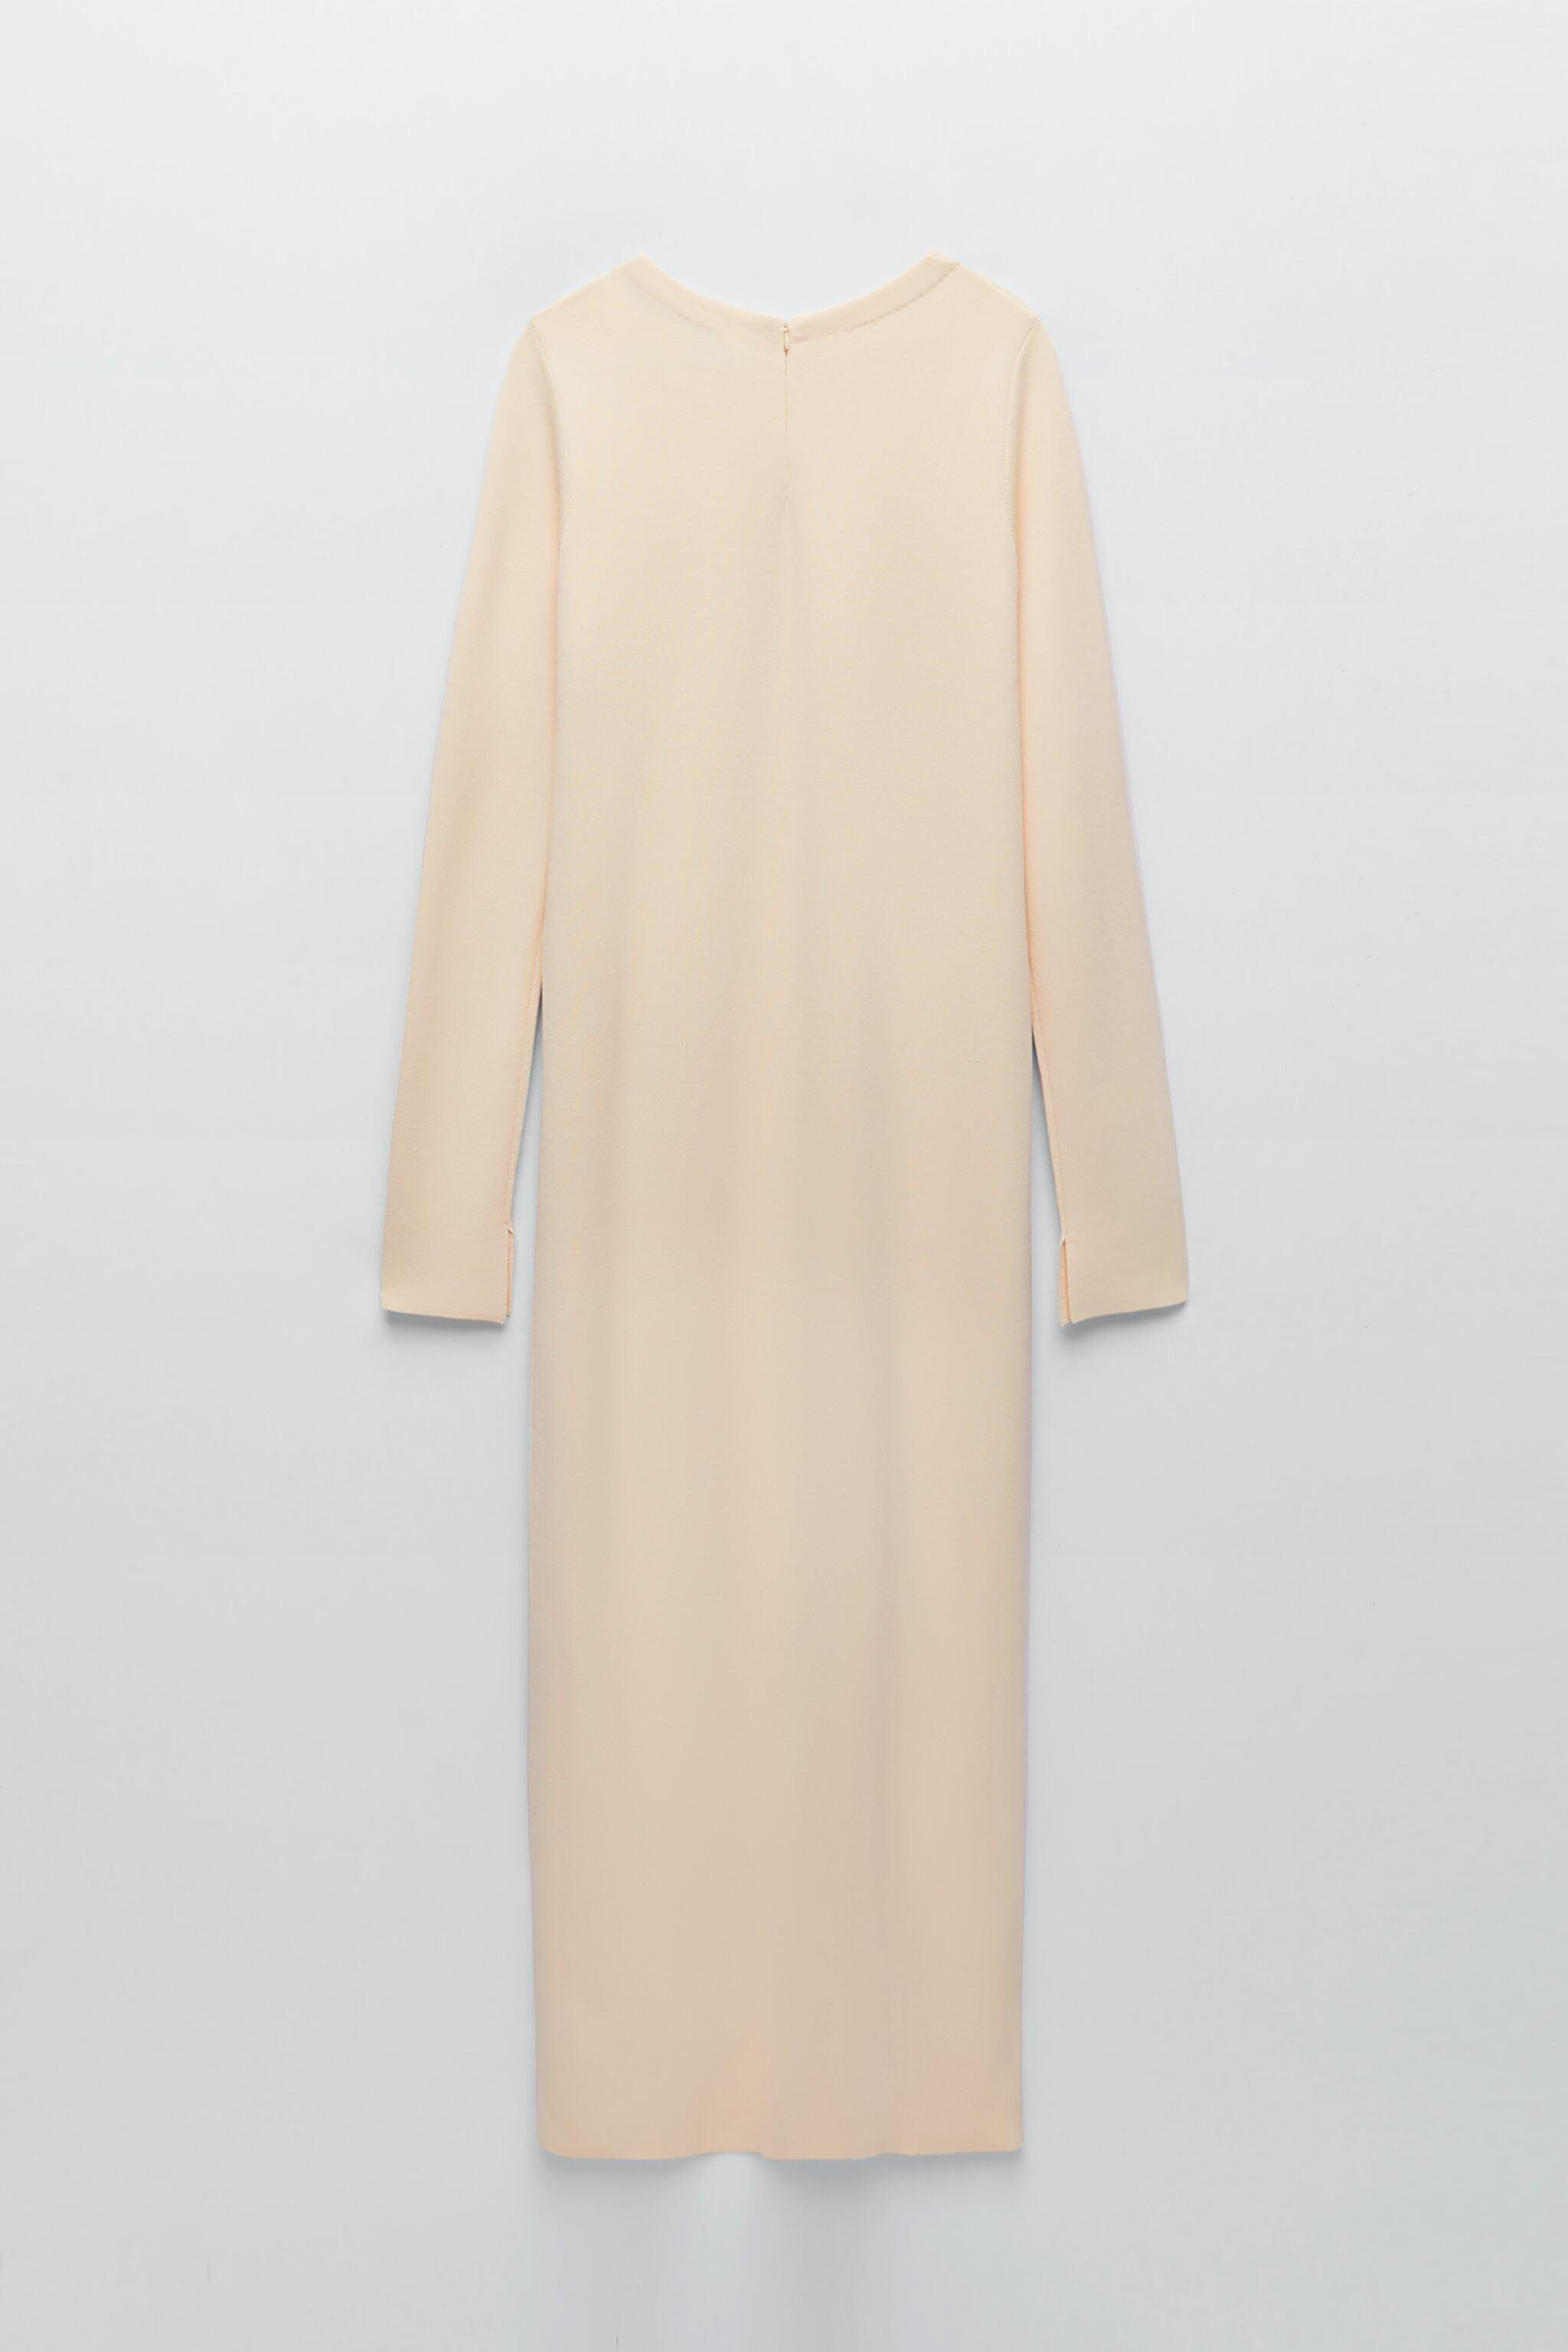 LONG KNIT DRESS LIMITED EDITION 5